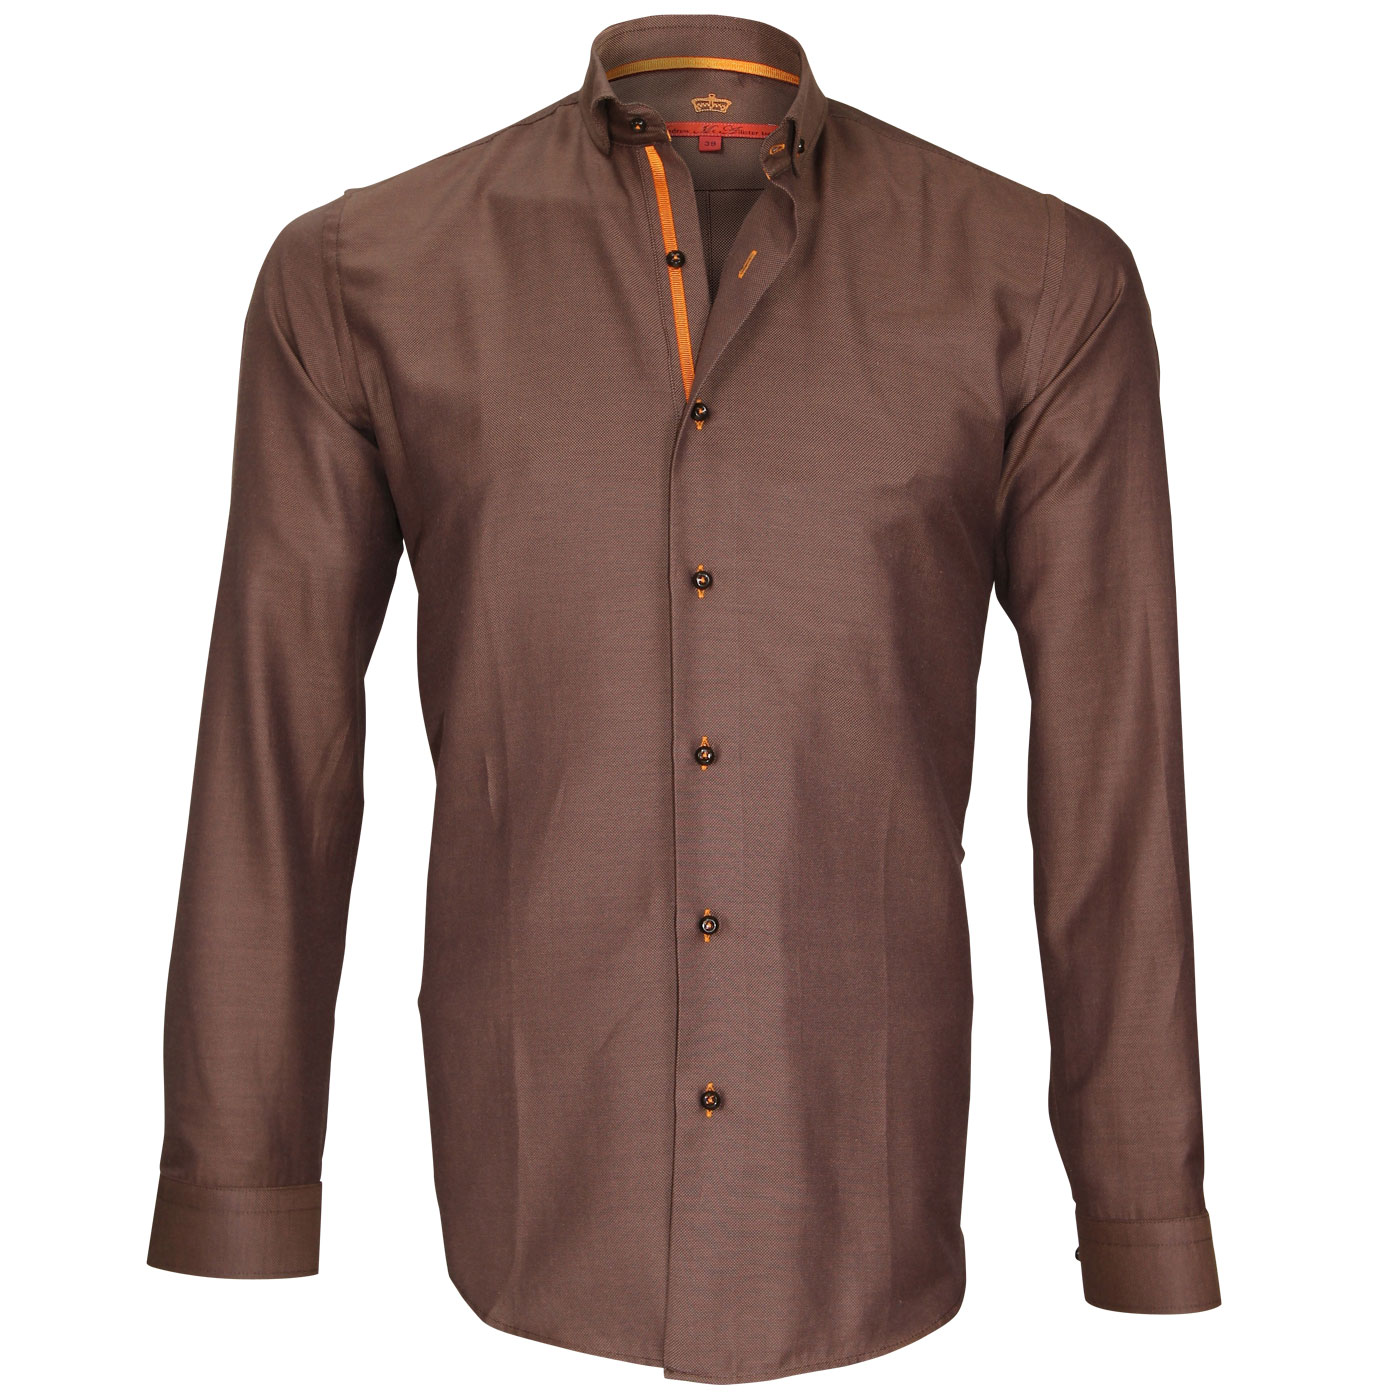 Casual shirt +600 models Exclusive shirts delivered 48H